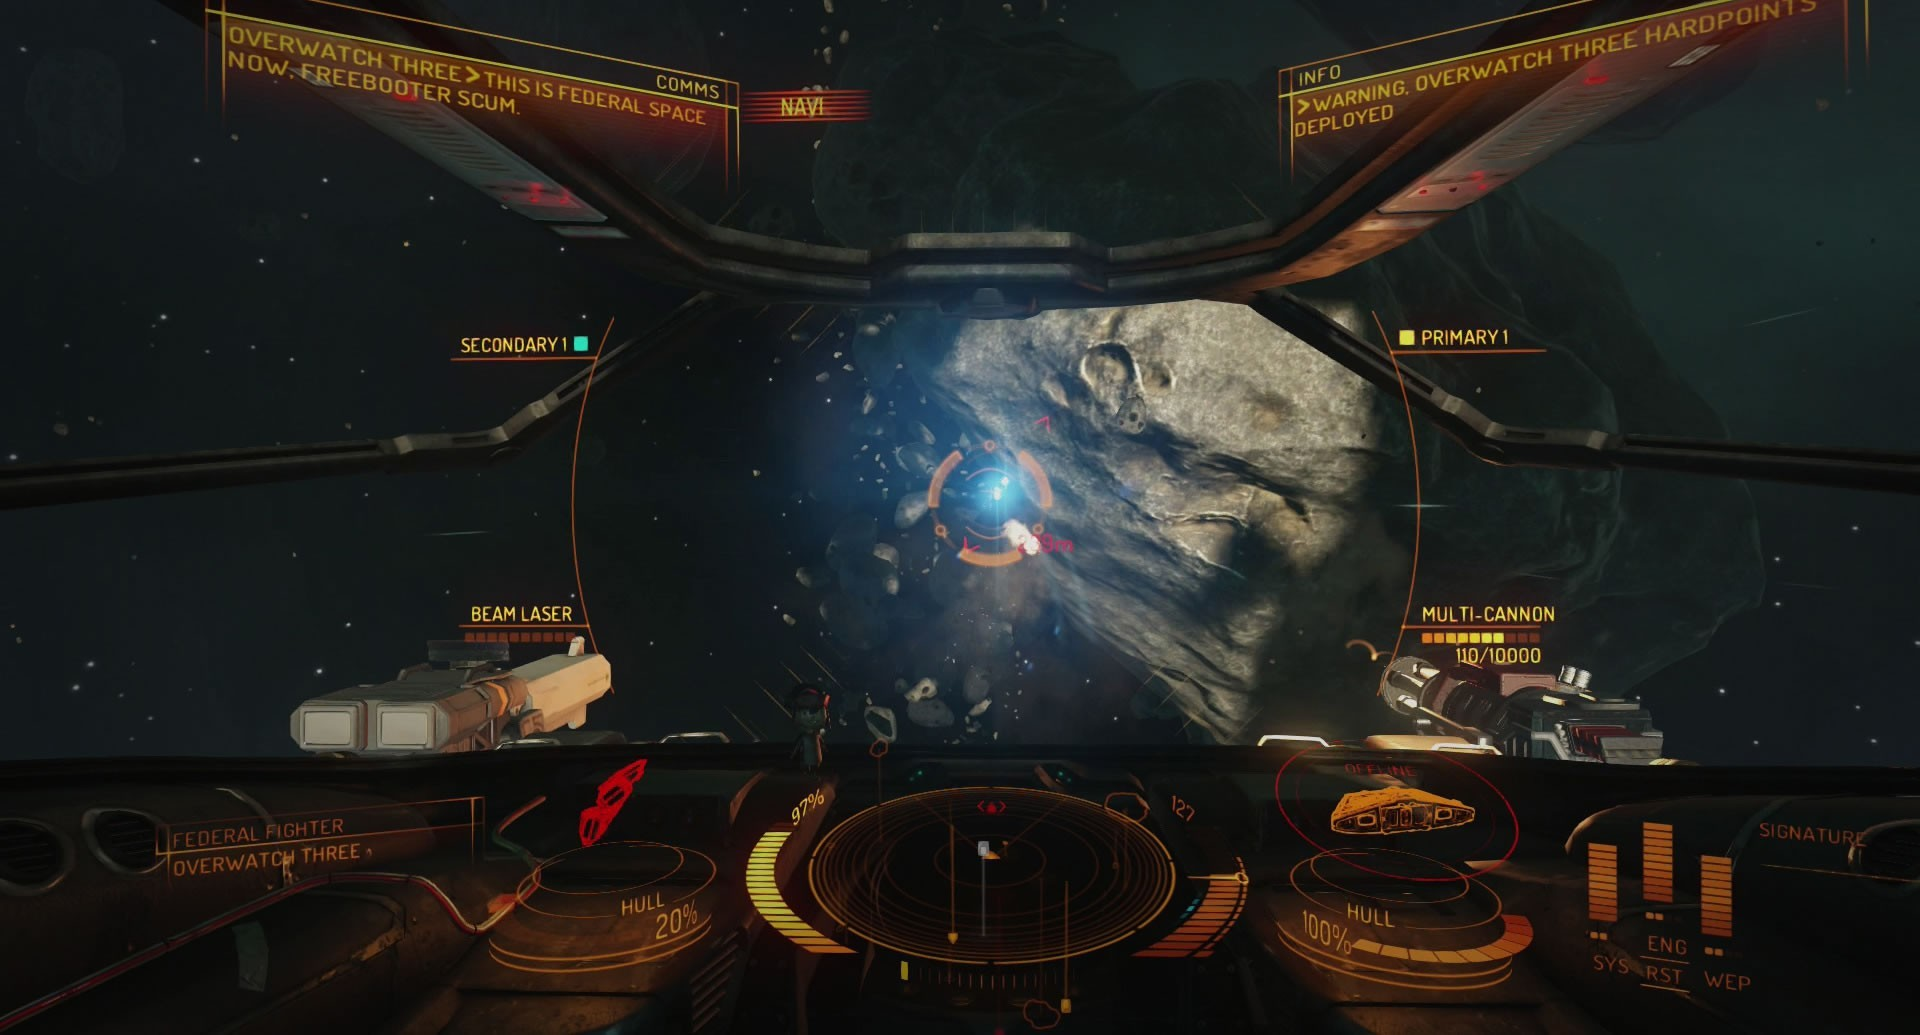 Online-only Elite: Dangerous offers refunds, but not to beta players